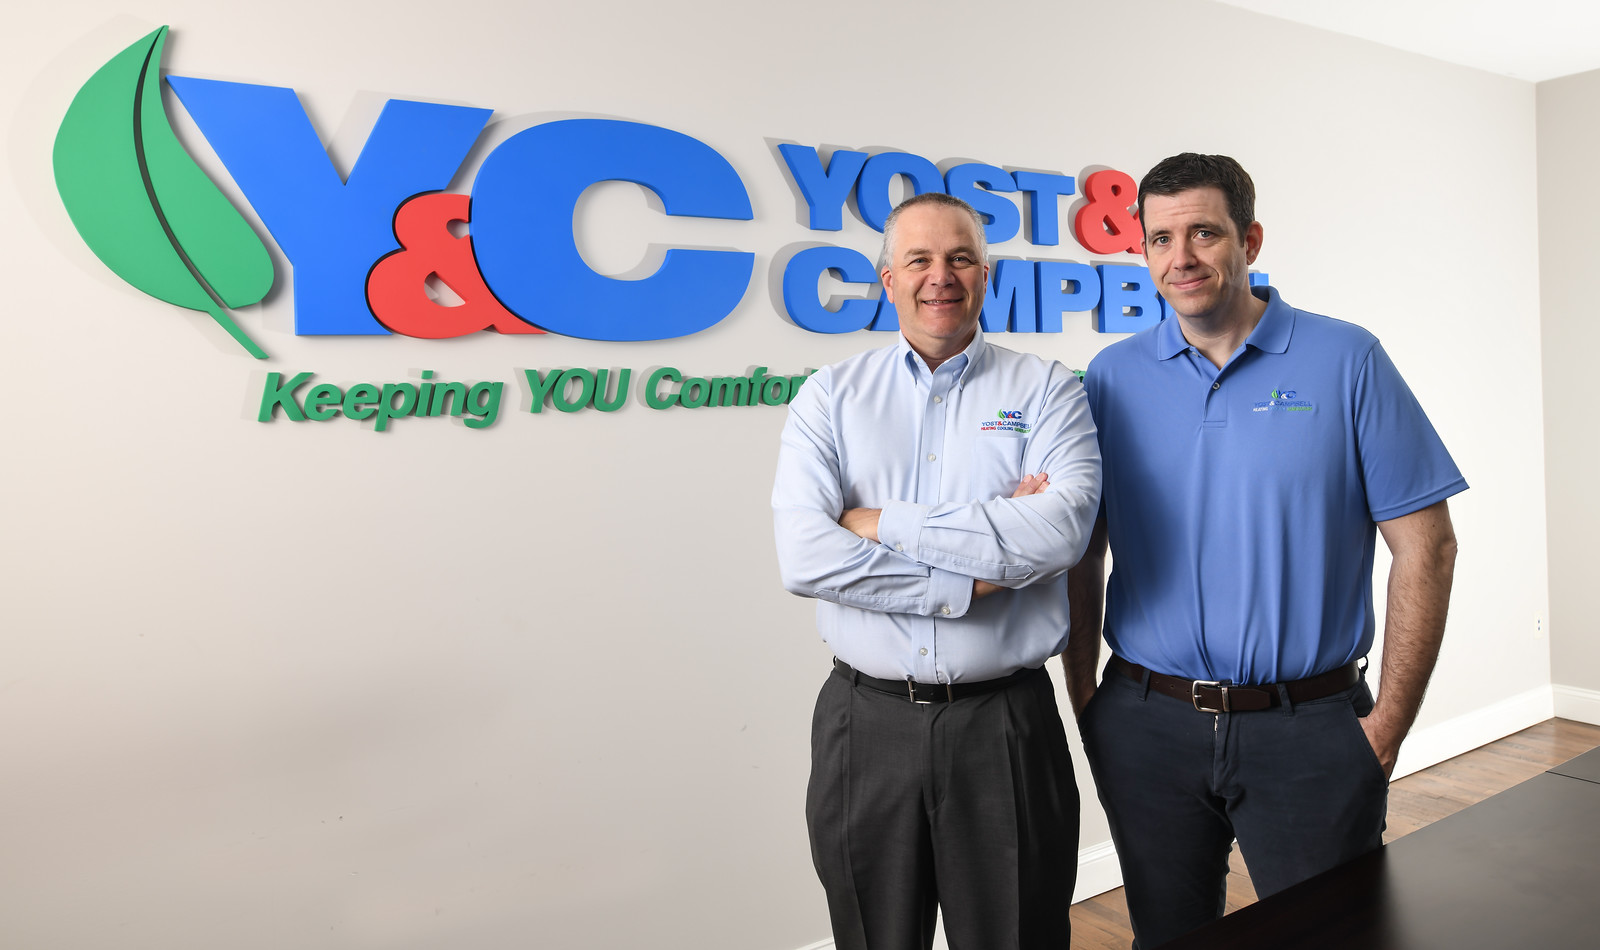 Yost & Campbell reviews | Heating & Air Conditioning/HVAC at 20 Brookdale Place - Mount Vernon NY